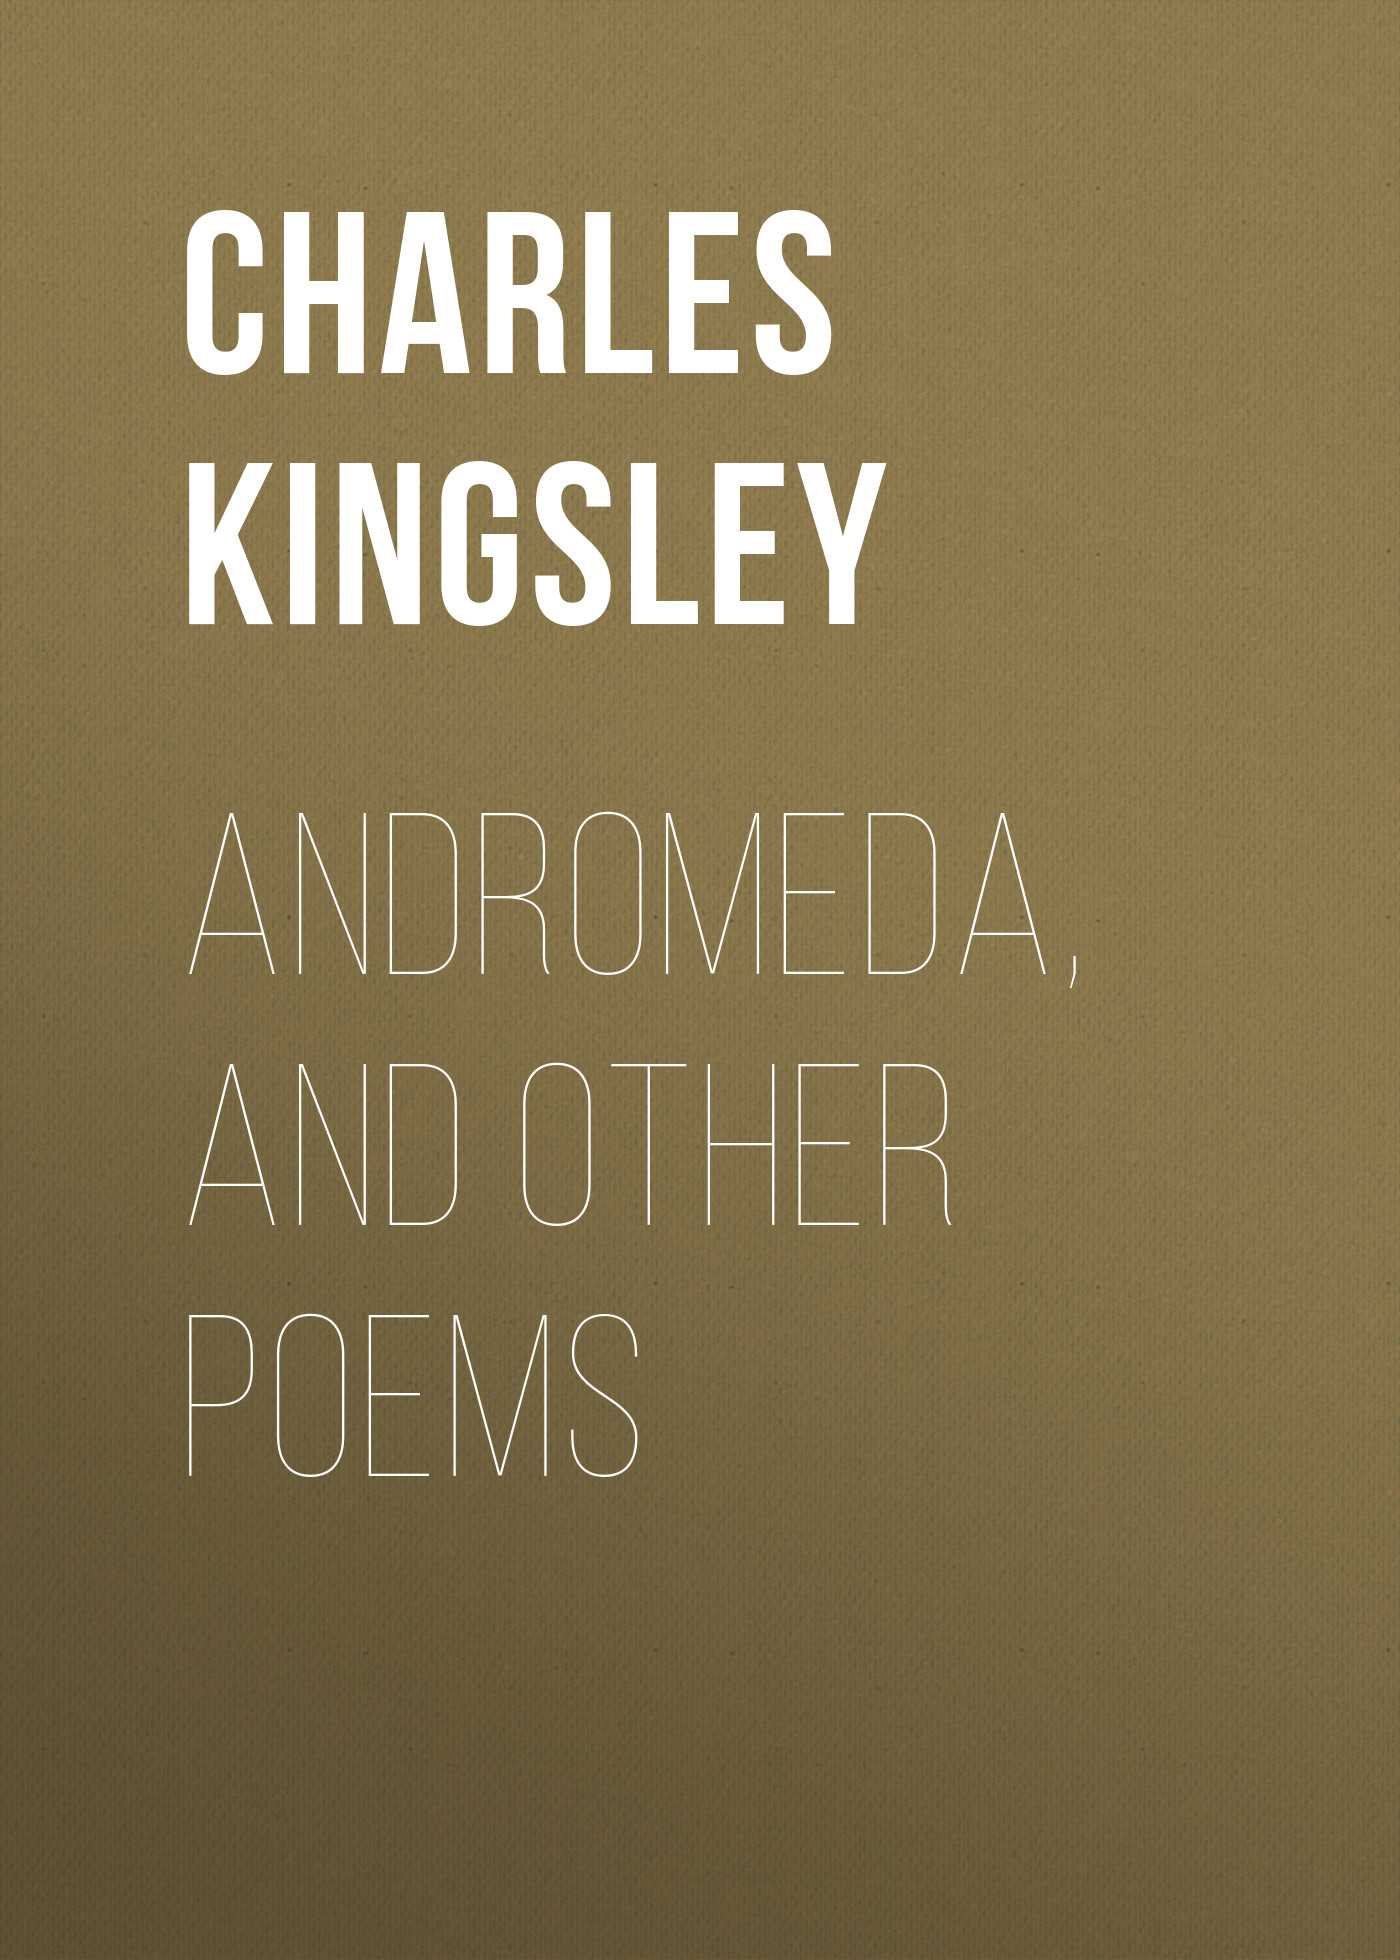 Charles Kingsley Andromeda, and Other Poems baudelaire charles the poems and prose poems of charles baudelaire